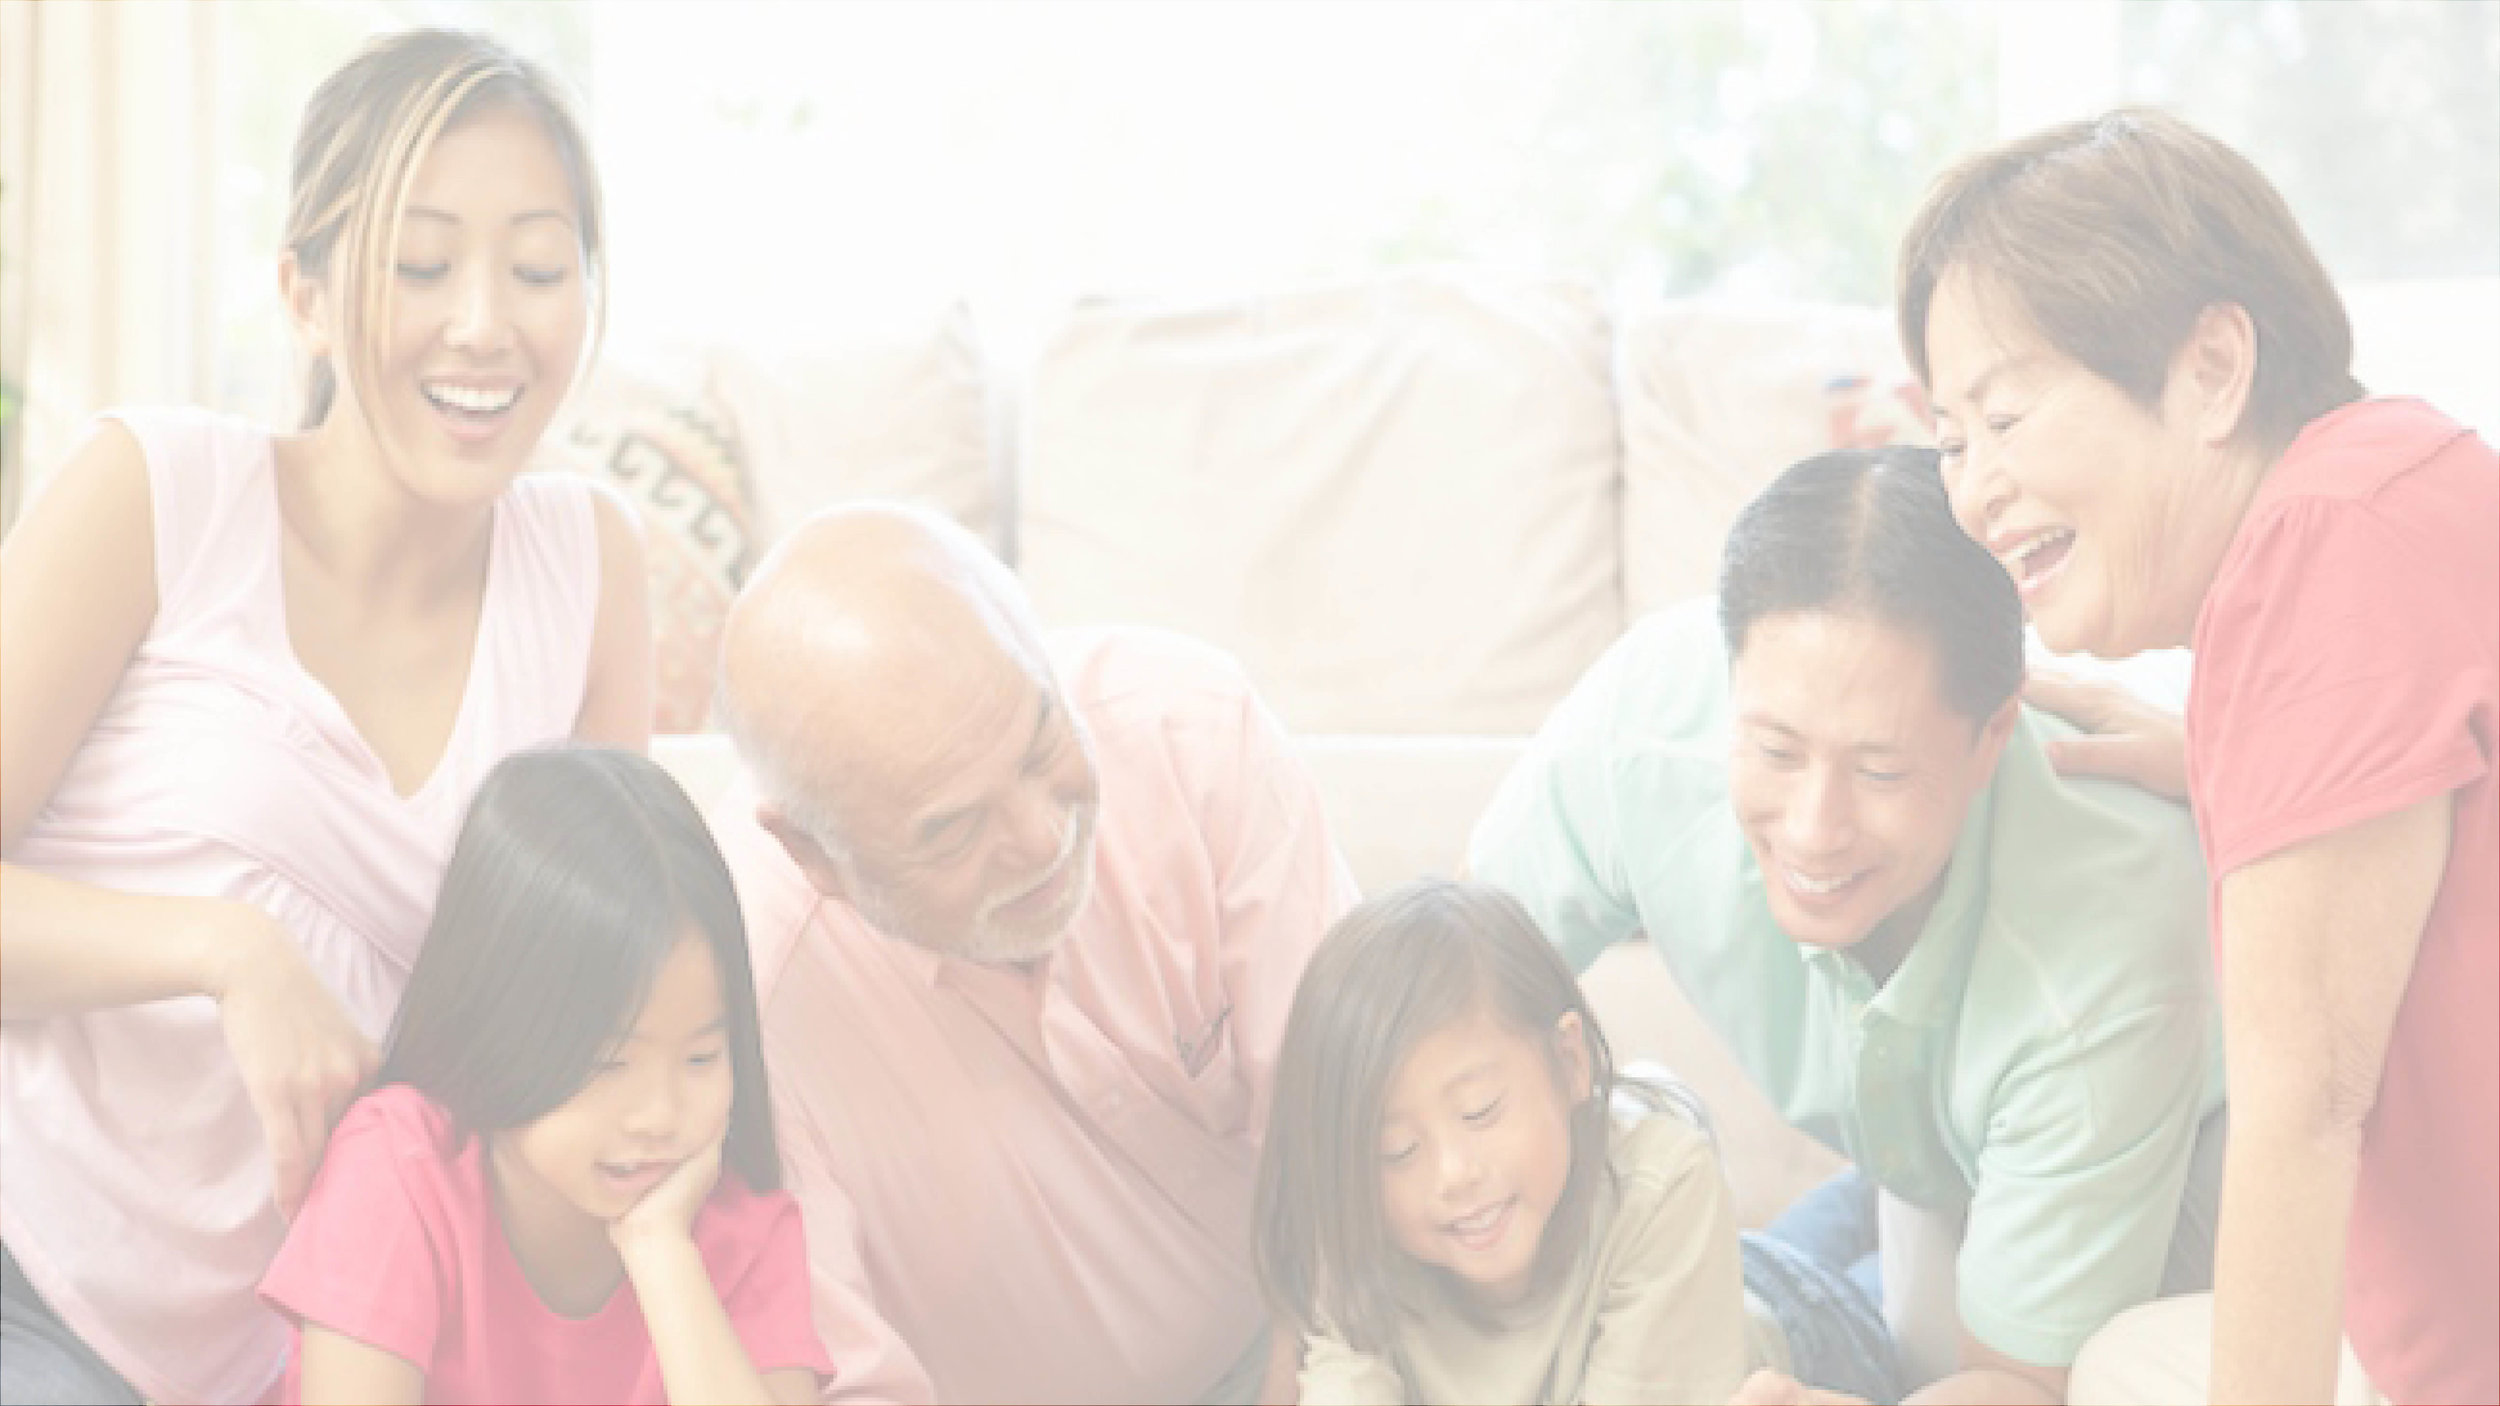 How can family unity be encouraged? - The family unit is rapidly changing in today's society. On average, families only spend thirty-four minutes together on a daily basis. This coupled with the average ten plus hours the average American looks at a screen, results in a family unit that does not spend enough quality time together.